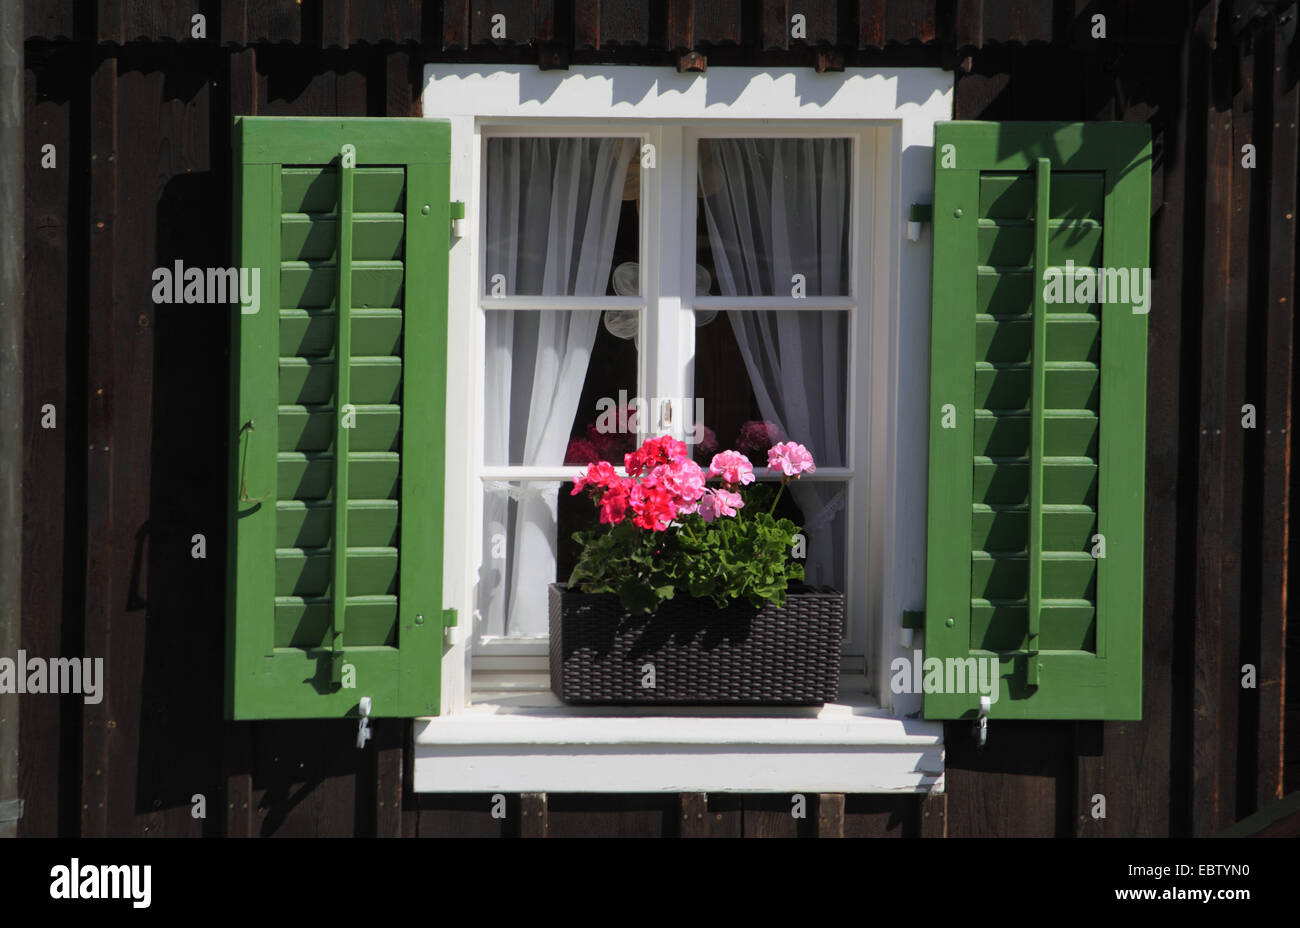 Blumenkasten Hängend Window With Geraniums Stockfotos And Window With Geraniums